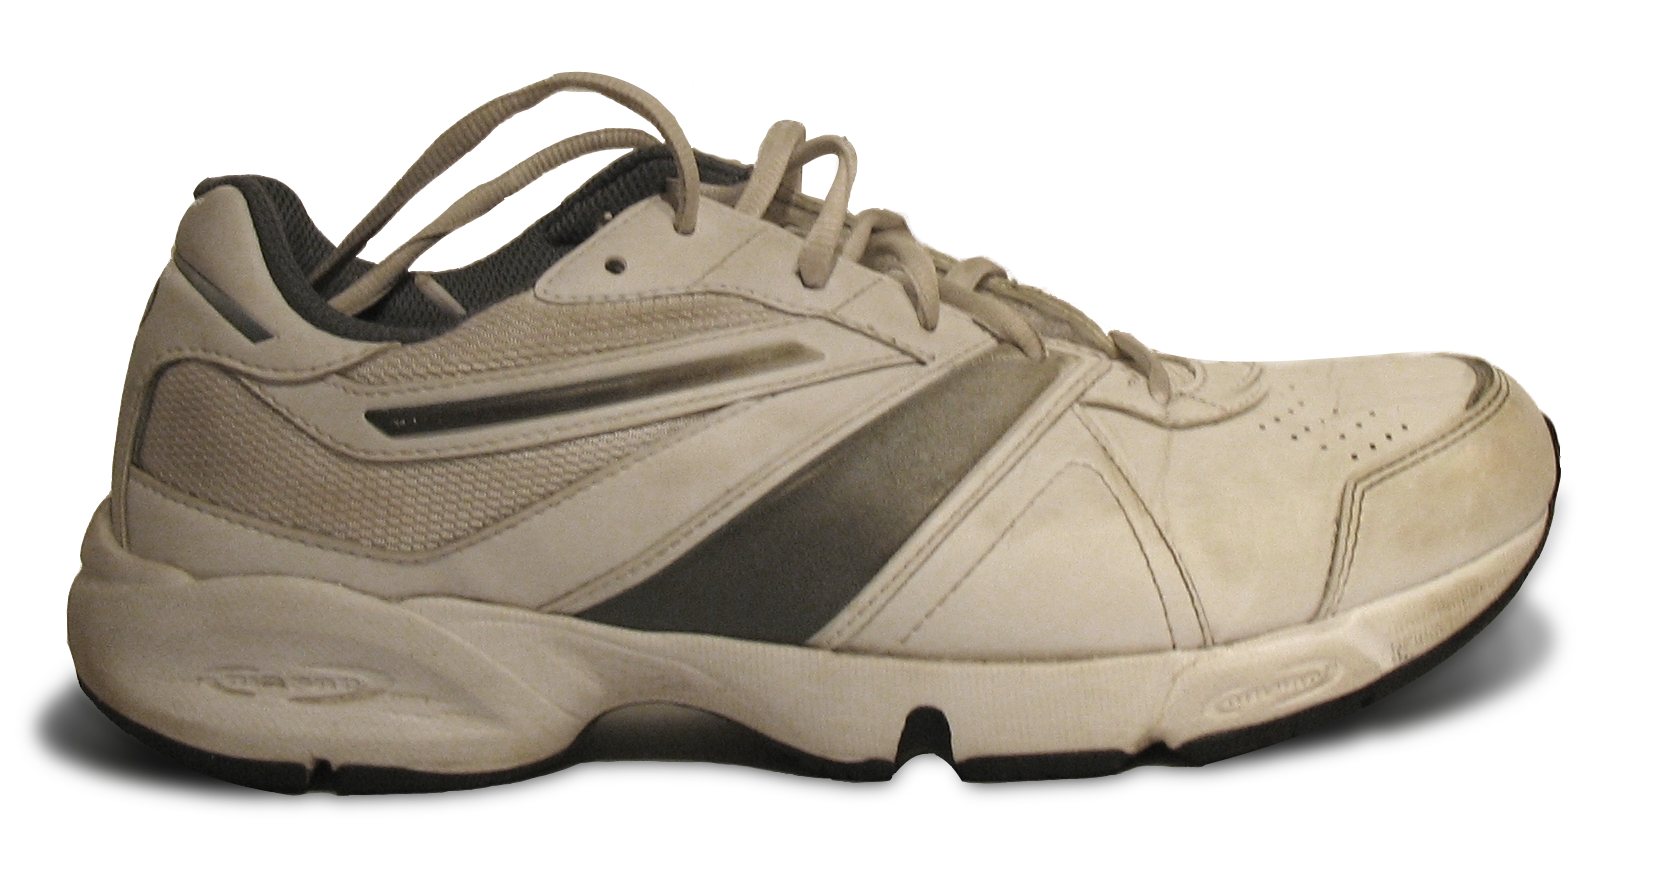 Shoes Sport Right Single Png image #45053